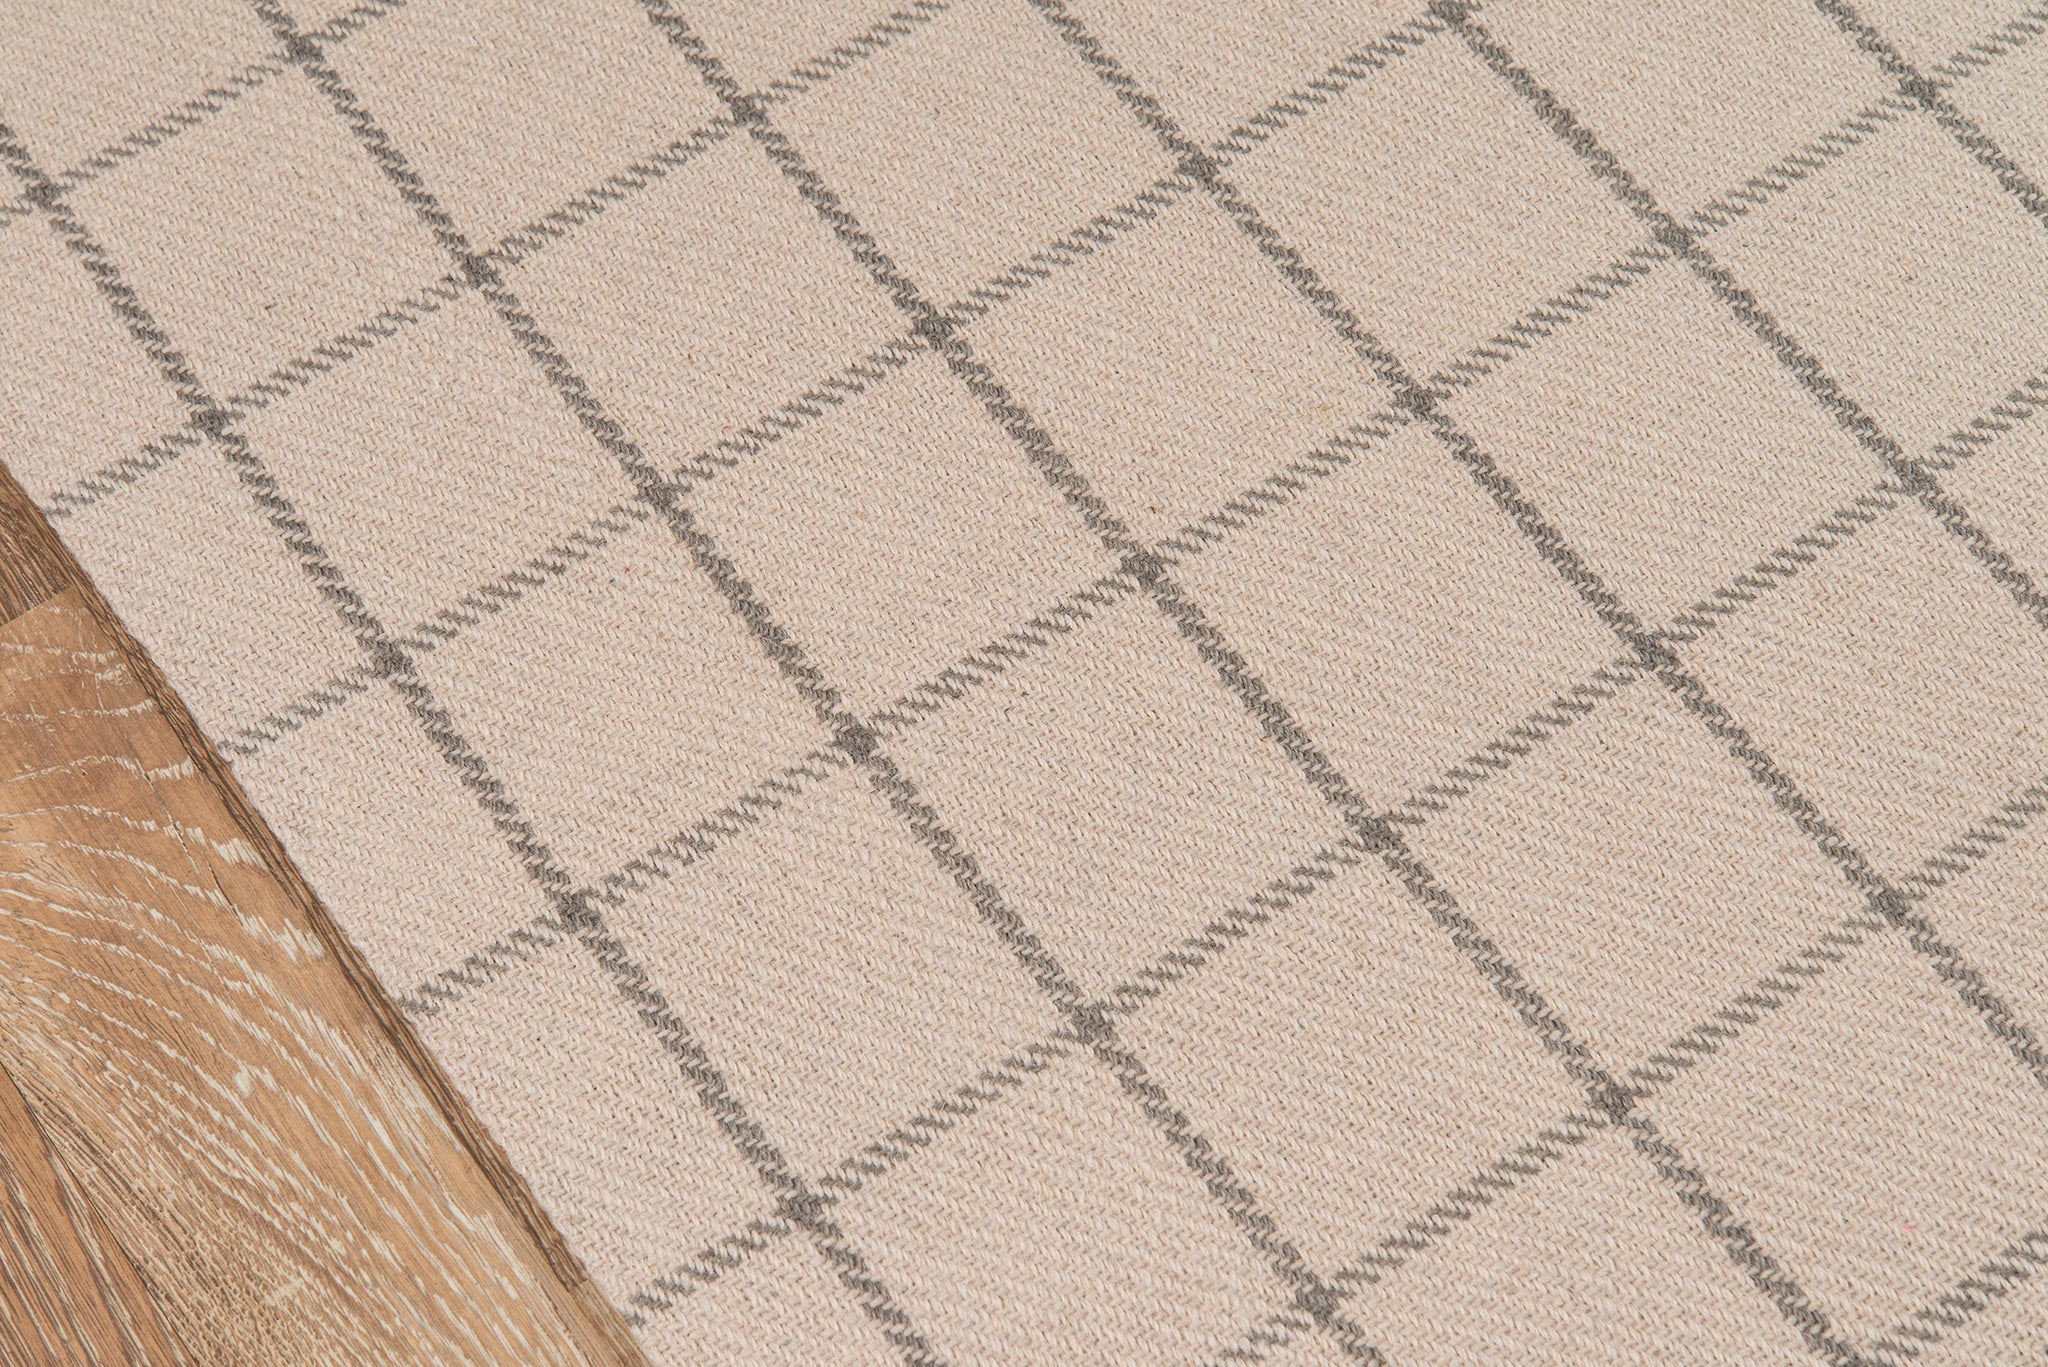 Ivory Plaid Tartan Wool Area Rug - Erin Gates - Marlborough